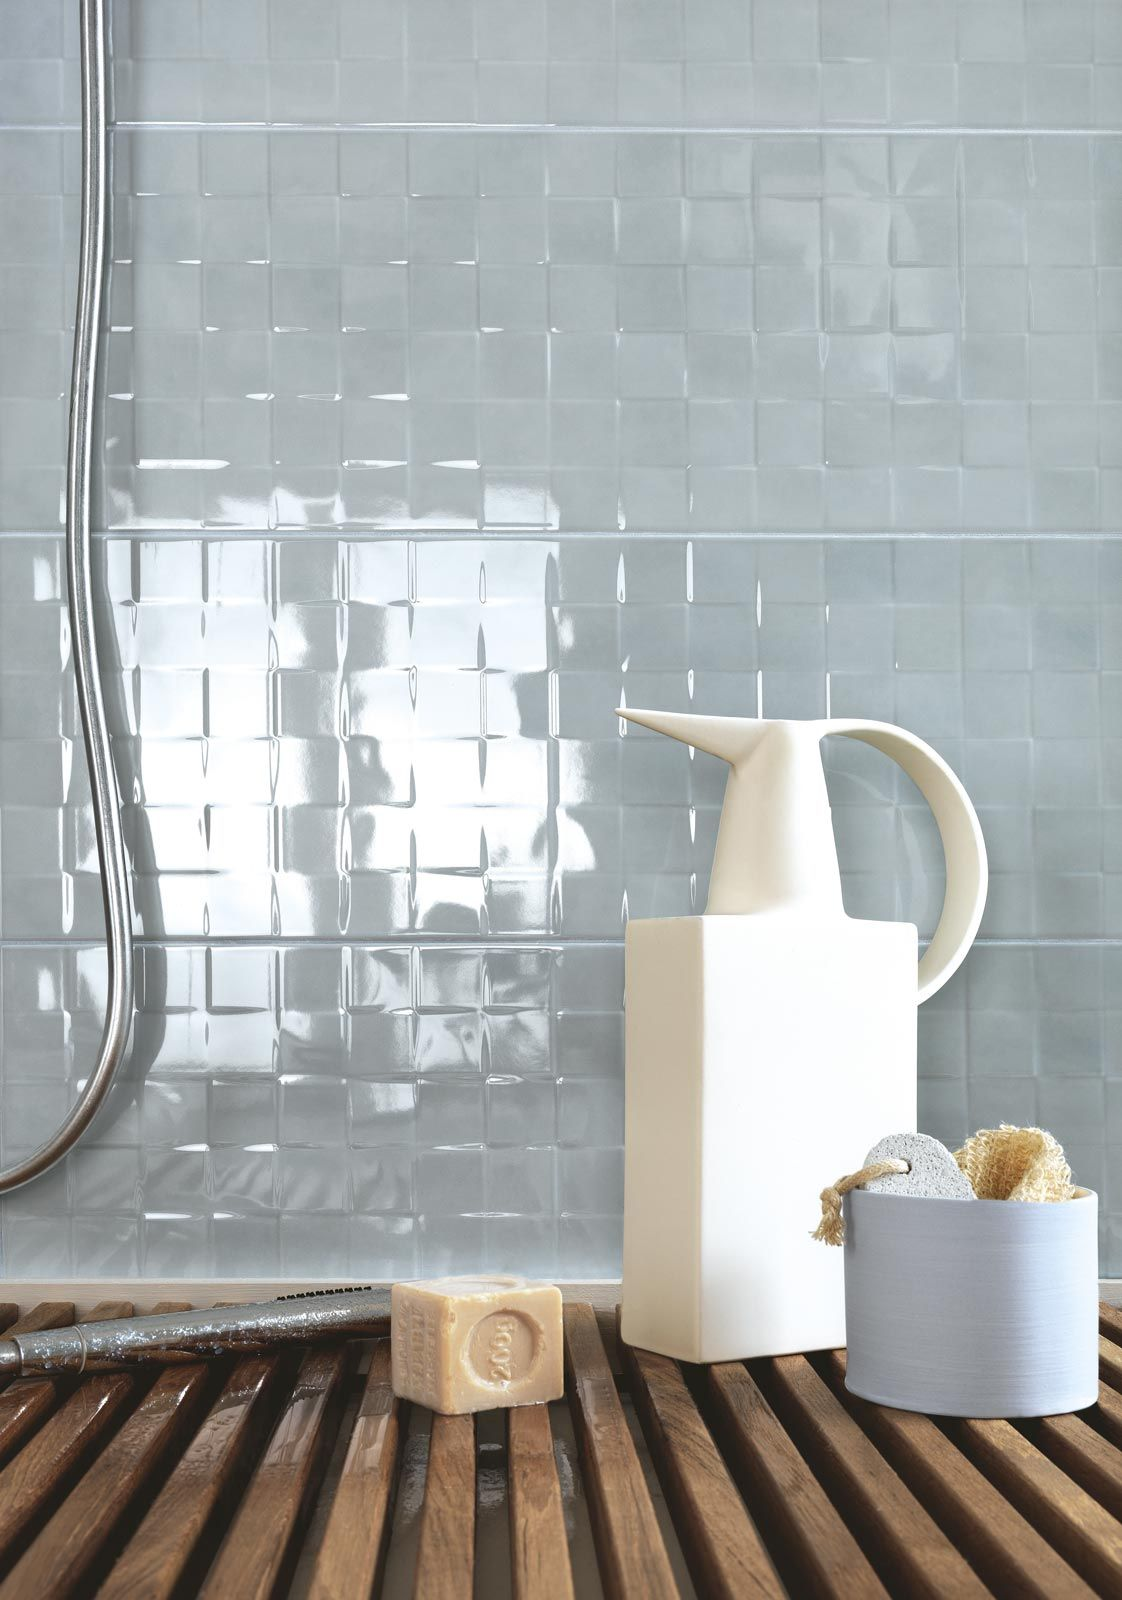 Handmade - glossy wall tiling for bathroom | RAGNO | tiles @Marazzi ...